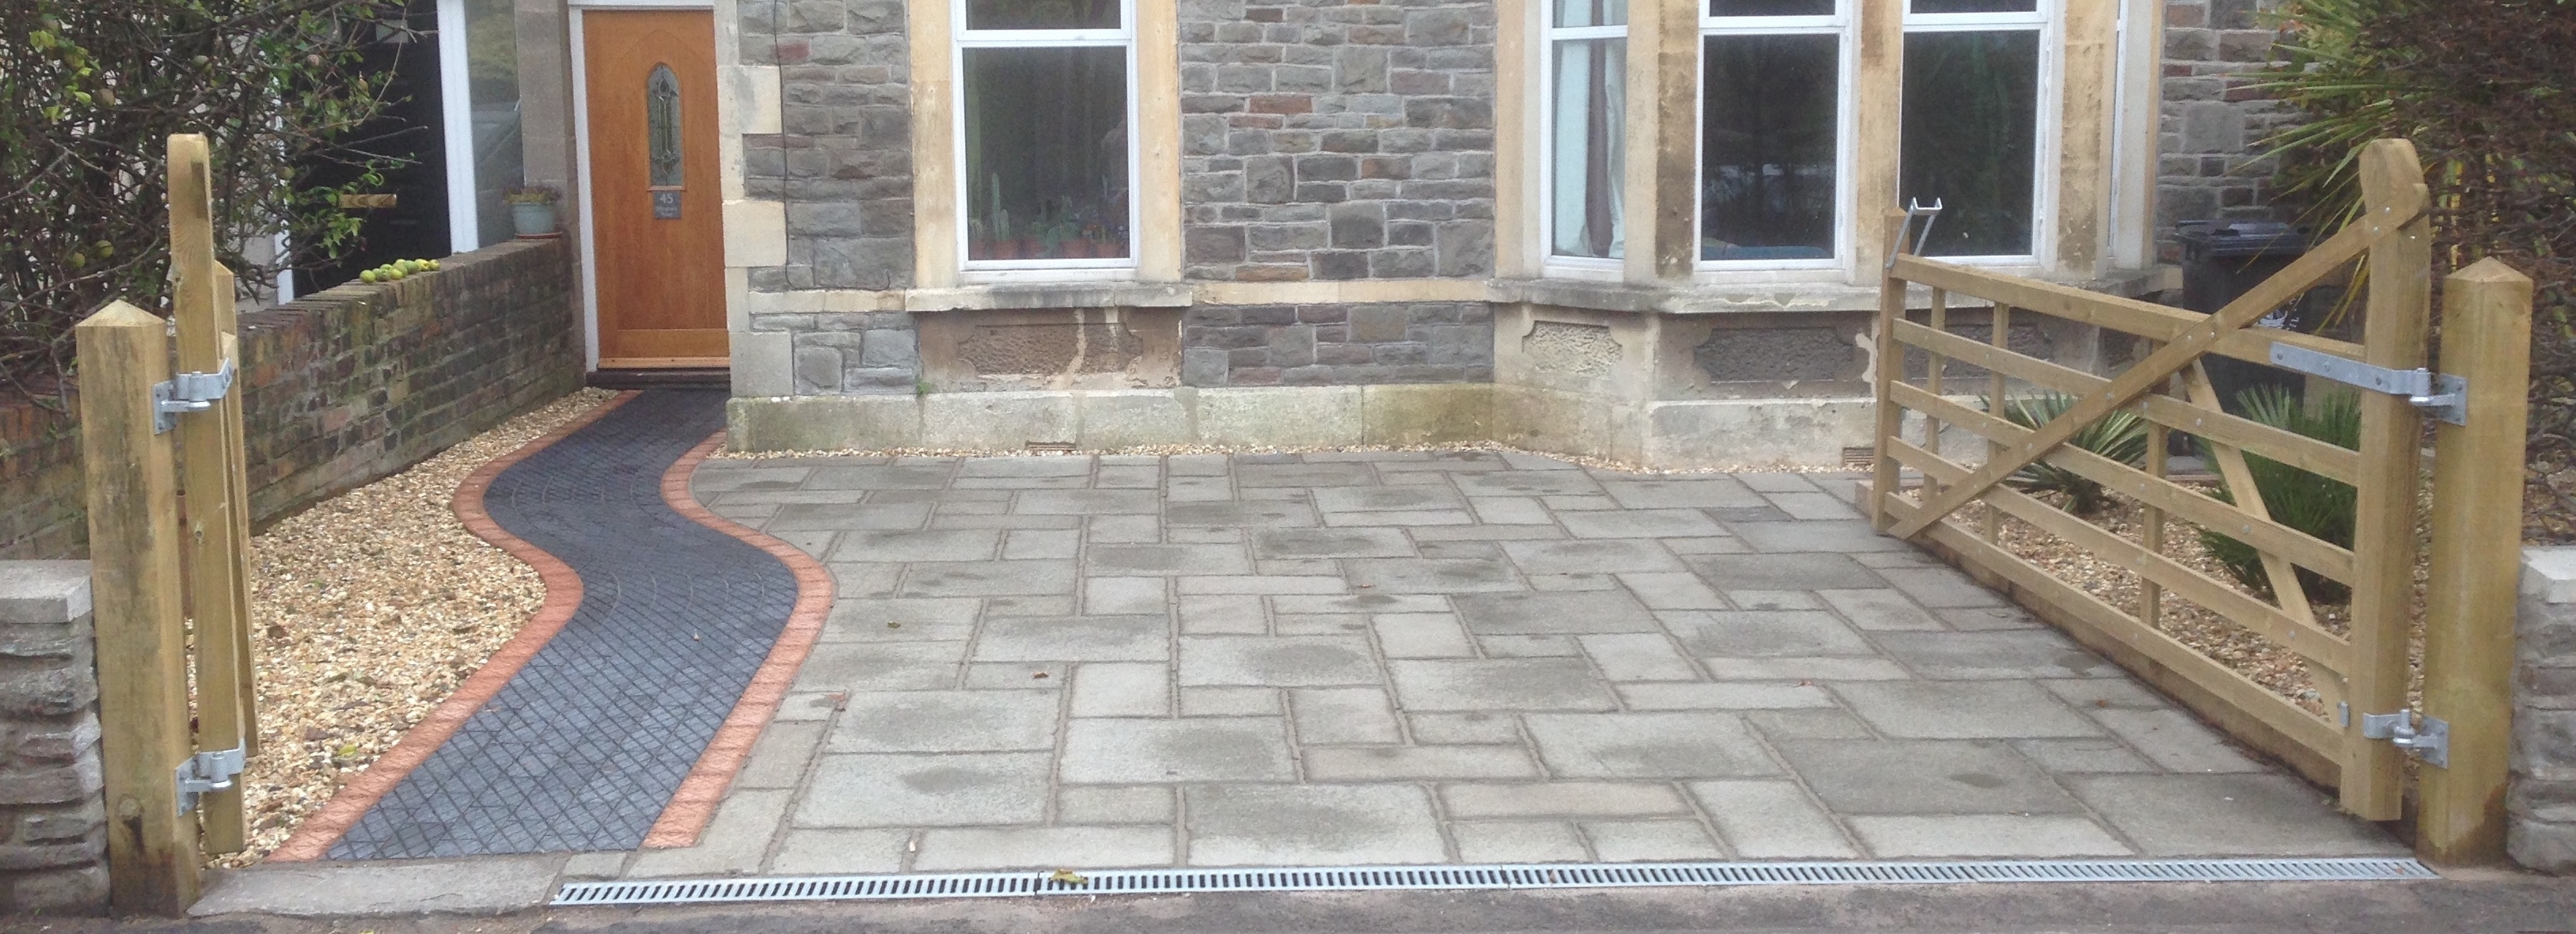 Root-landscaping-driveway-and-path